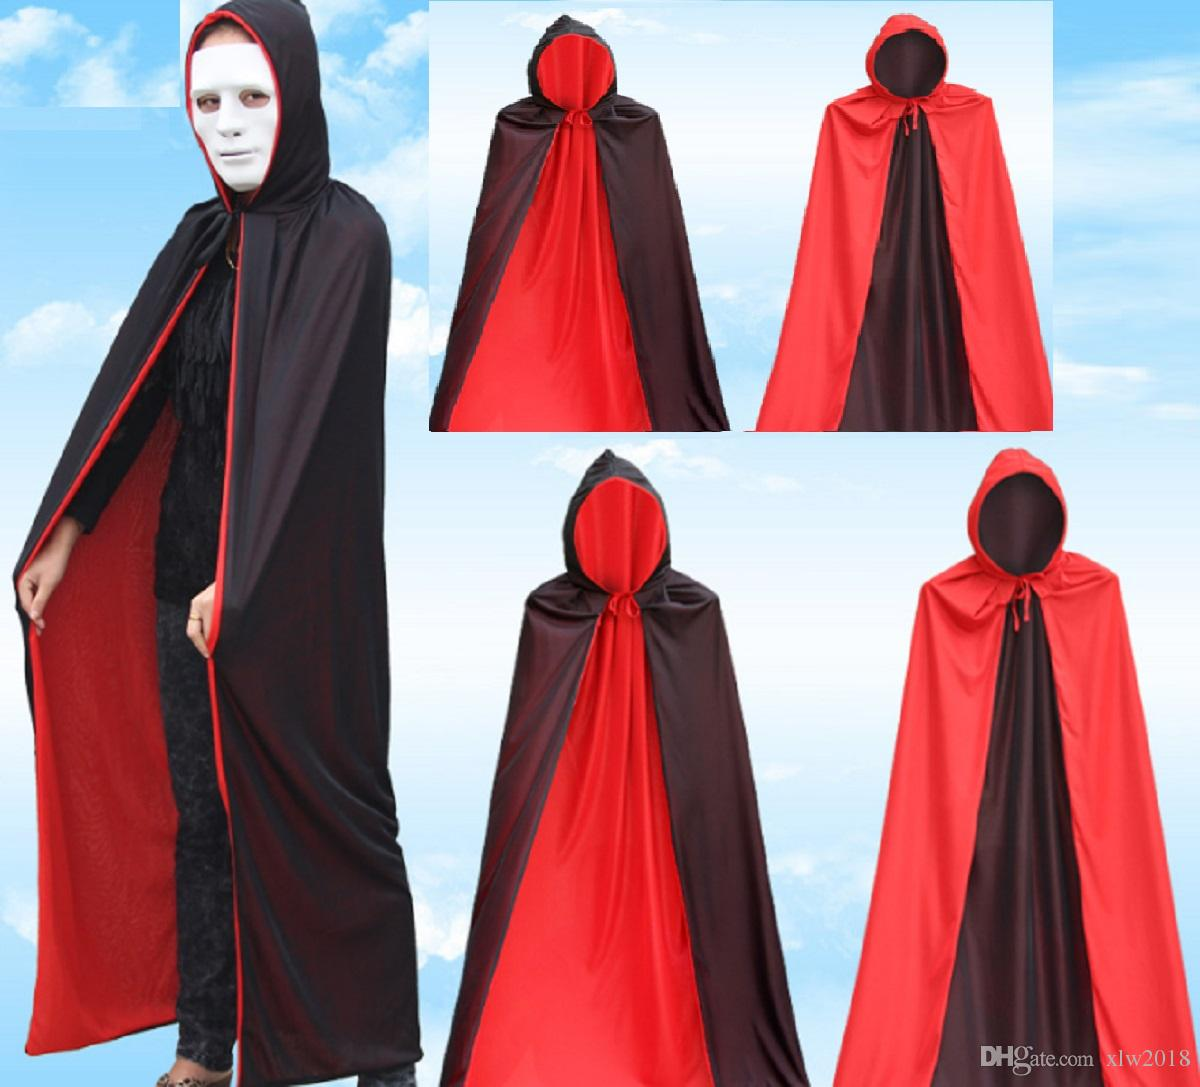 Menu0027S Very Cool V&ire Costume Black Cloak With Cap Halloween Costume Dress Cape For V&ire Magician Double Face Polyester Cloak Duo Halloween Costumes ...  sc 1 st  DHgate.com & Menu0027S Very Cool Vampire Costume Black Cloak With Cap Halloween ...